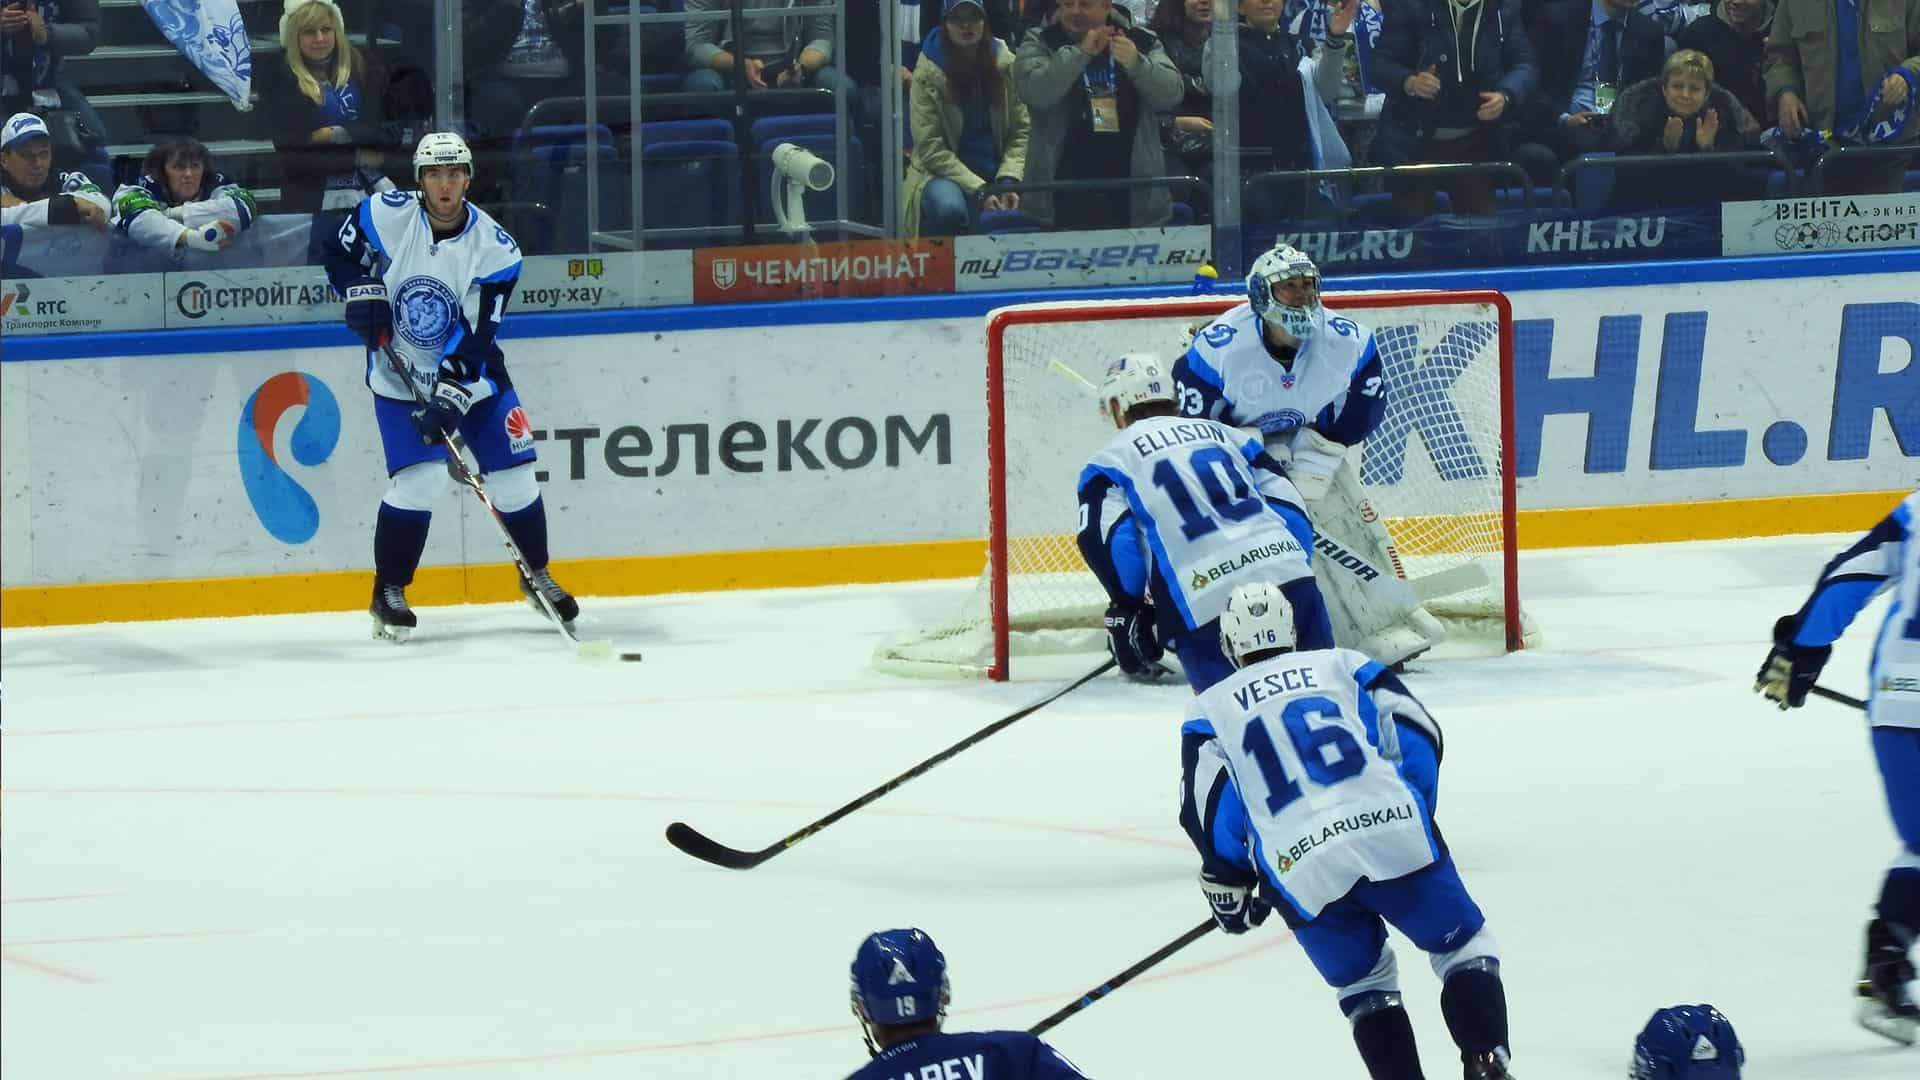 Things to see in Moscow: Ice hocke game